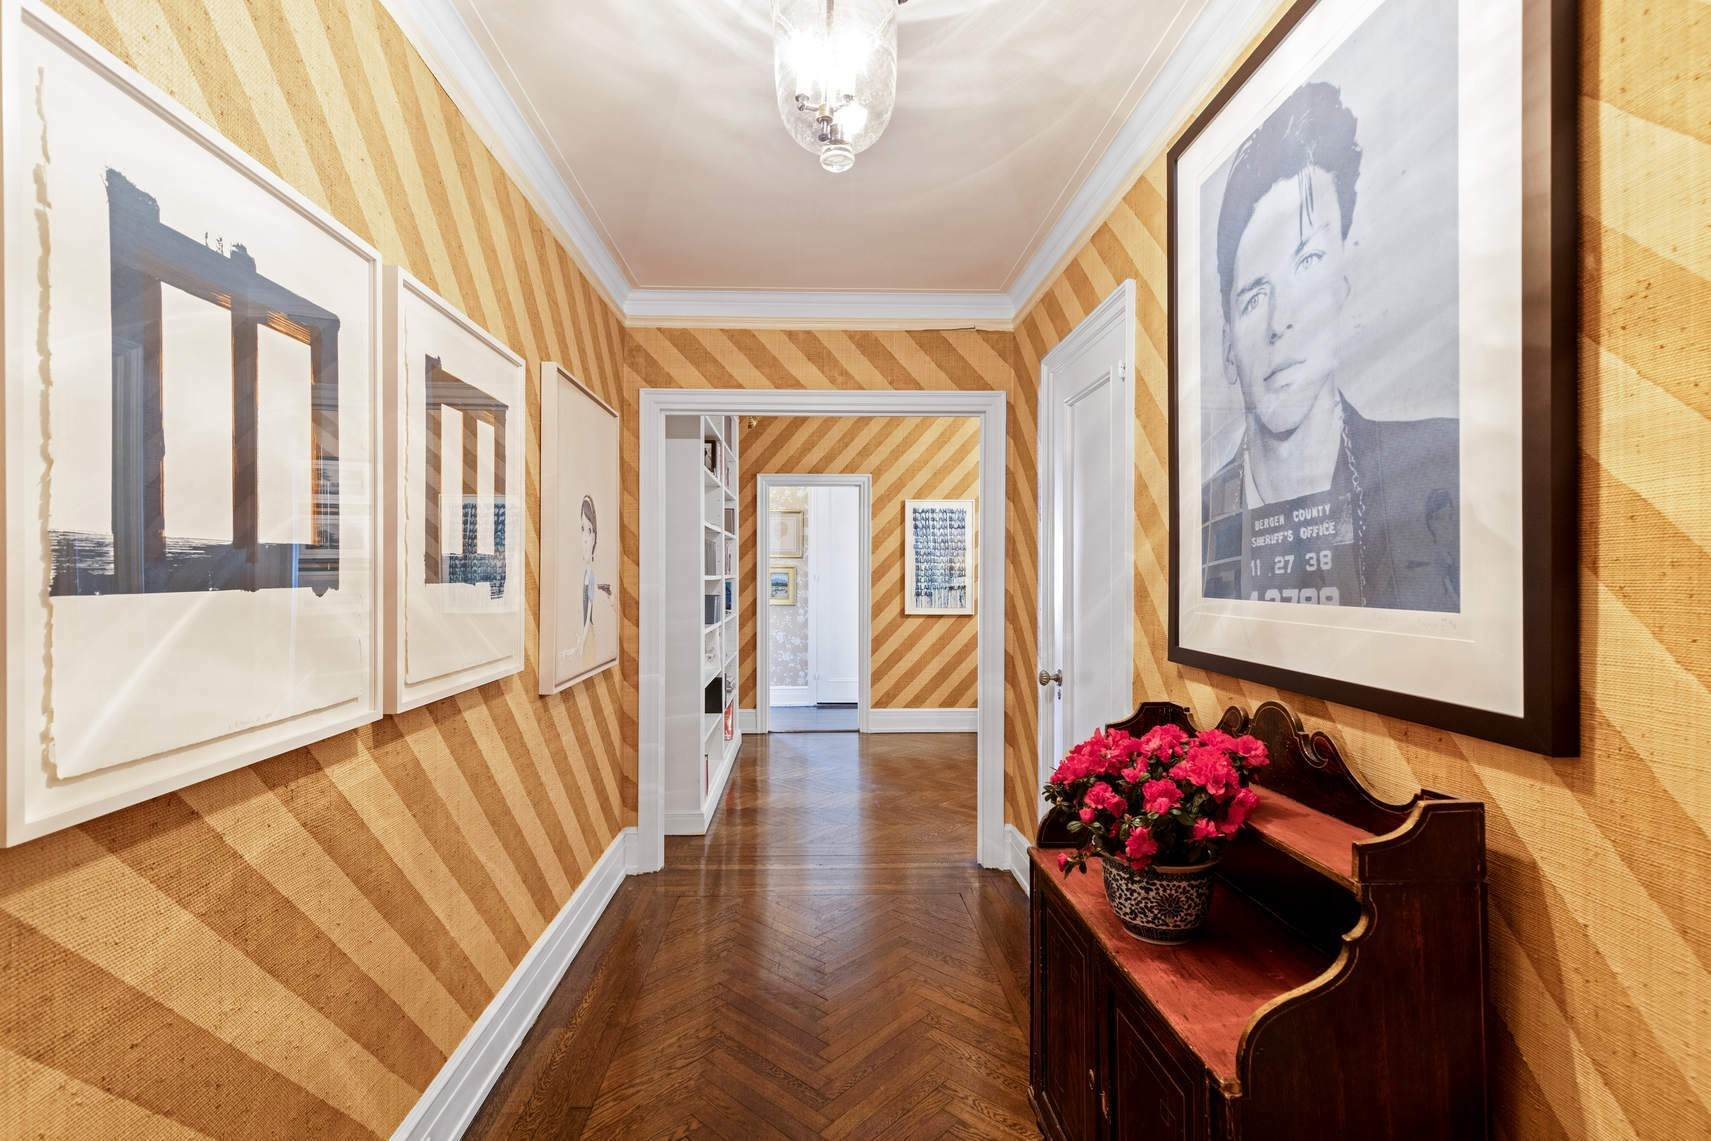 Co-op property por un Venta en 30 East 71st Street 33 East 70th Street, 8-C New York, Nueva York,10021 Estados Unidos